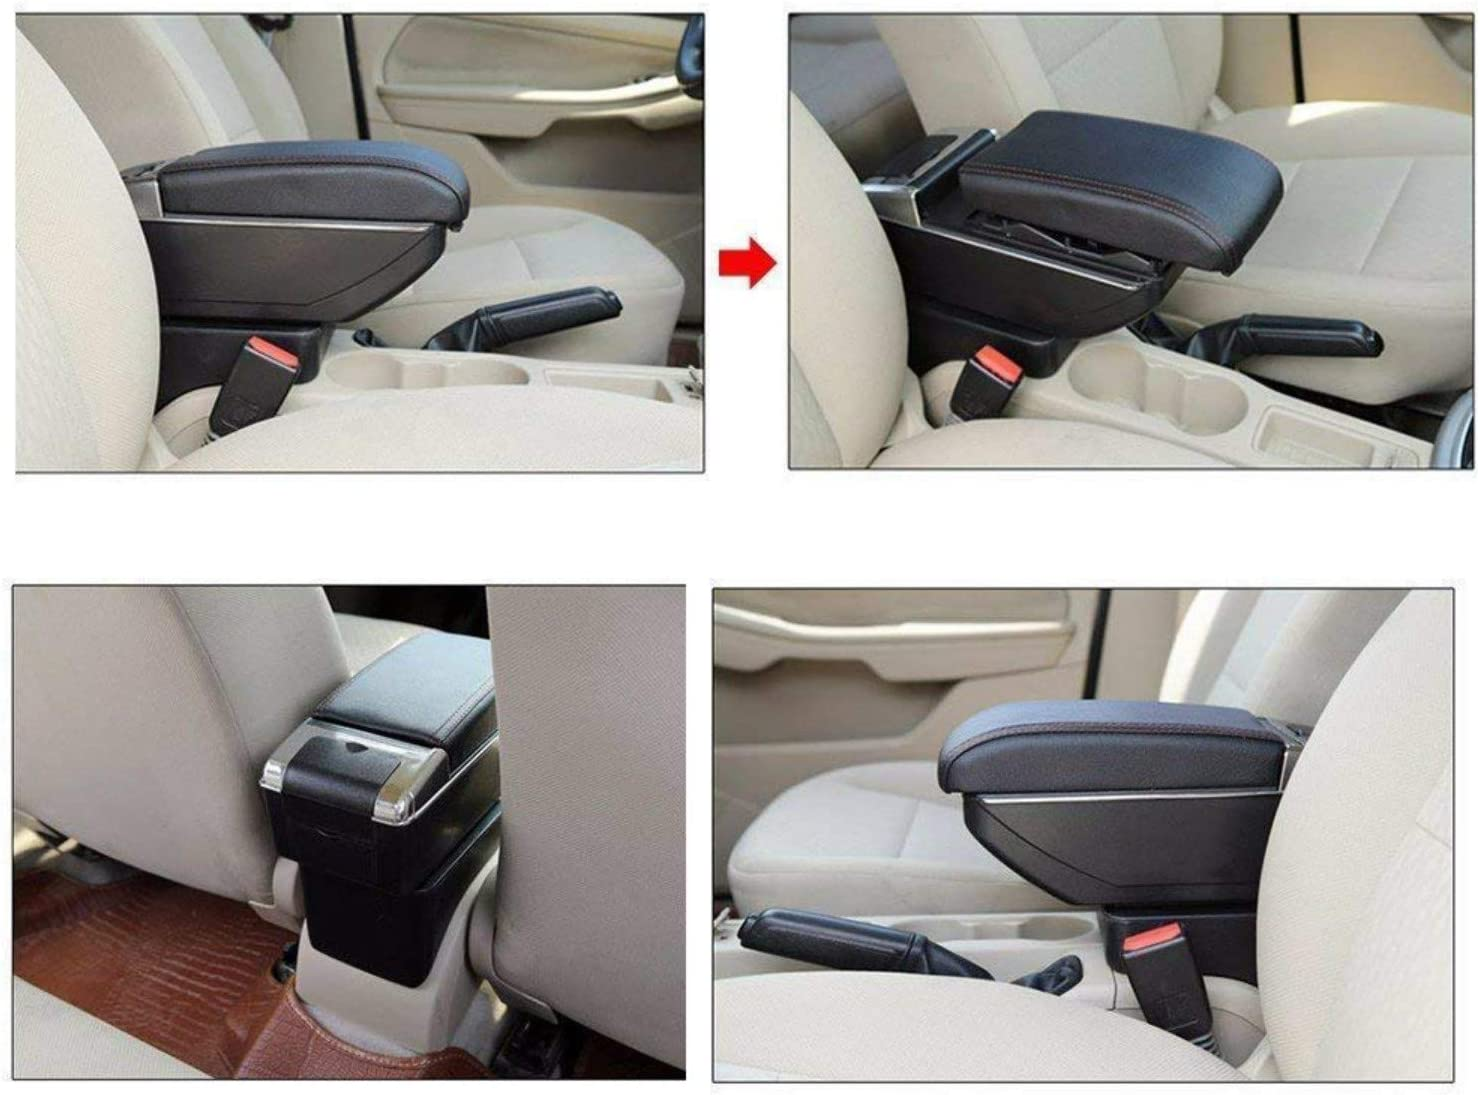 For 2010-2017 N issan NV200 Luxury Car Armrest Center Console Accessories Arm Rest Built-in LED Light black